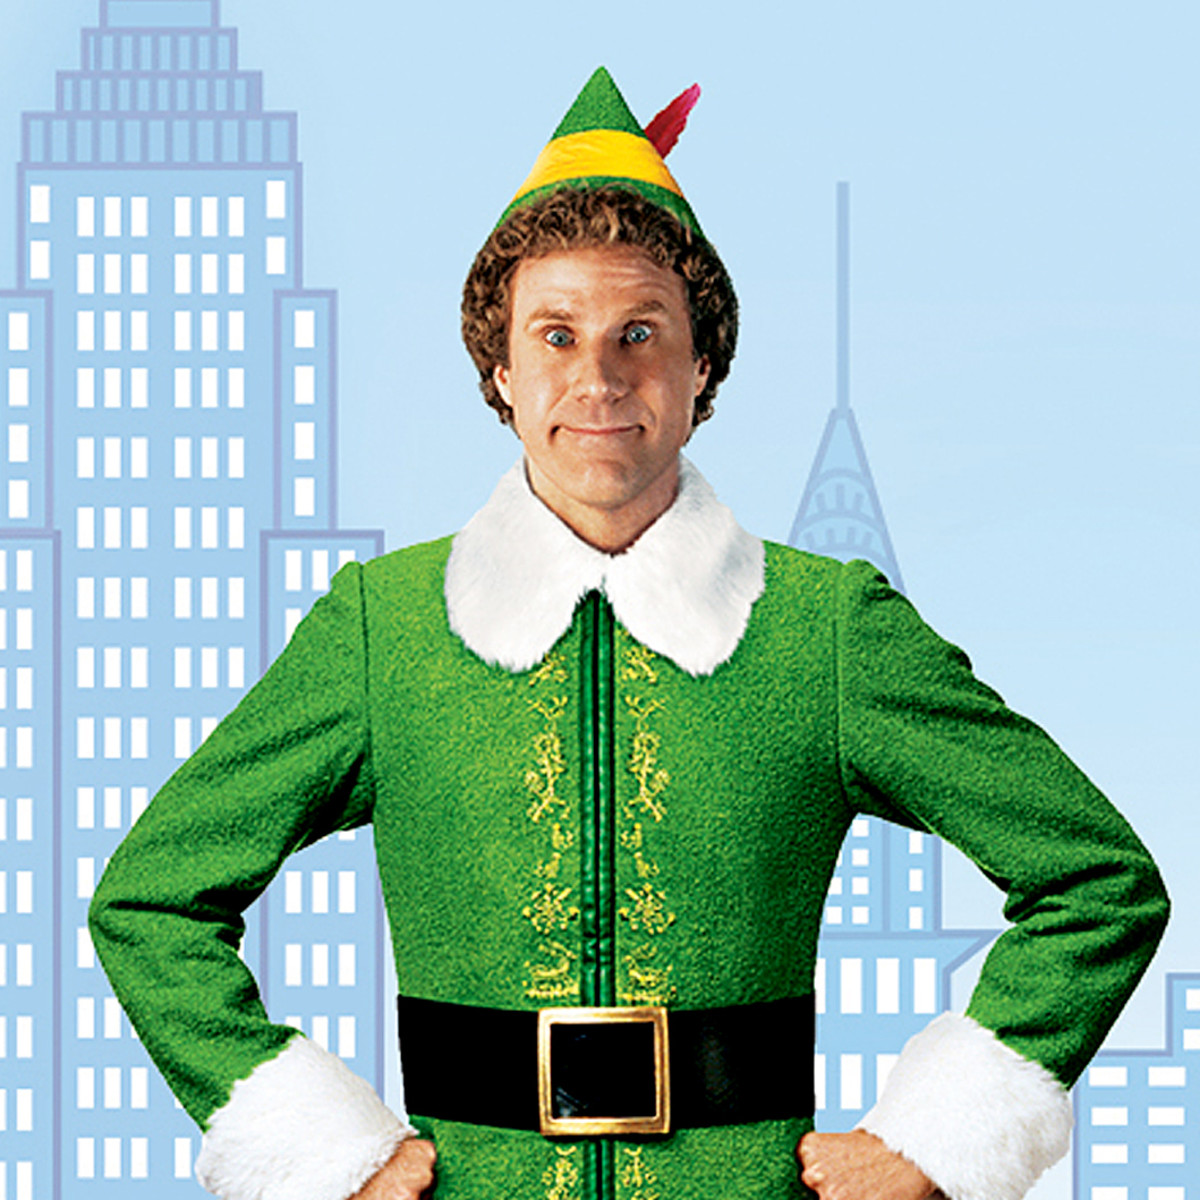 Houston, Will Ferrell, Elf